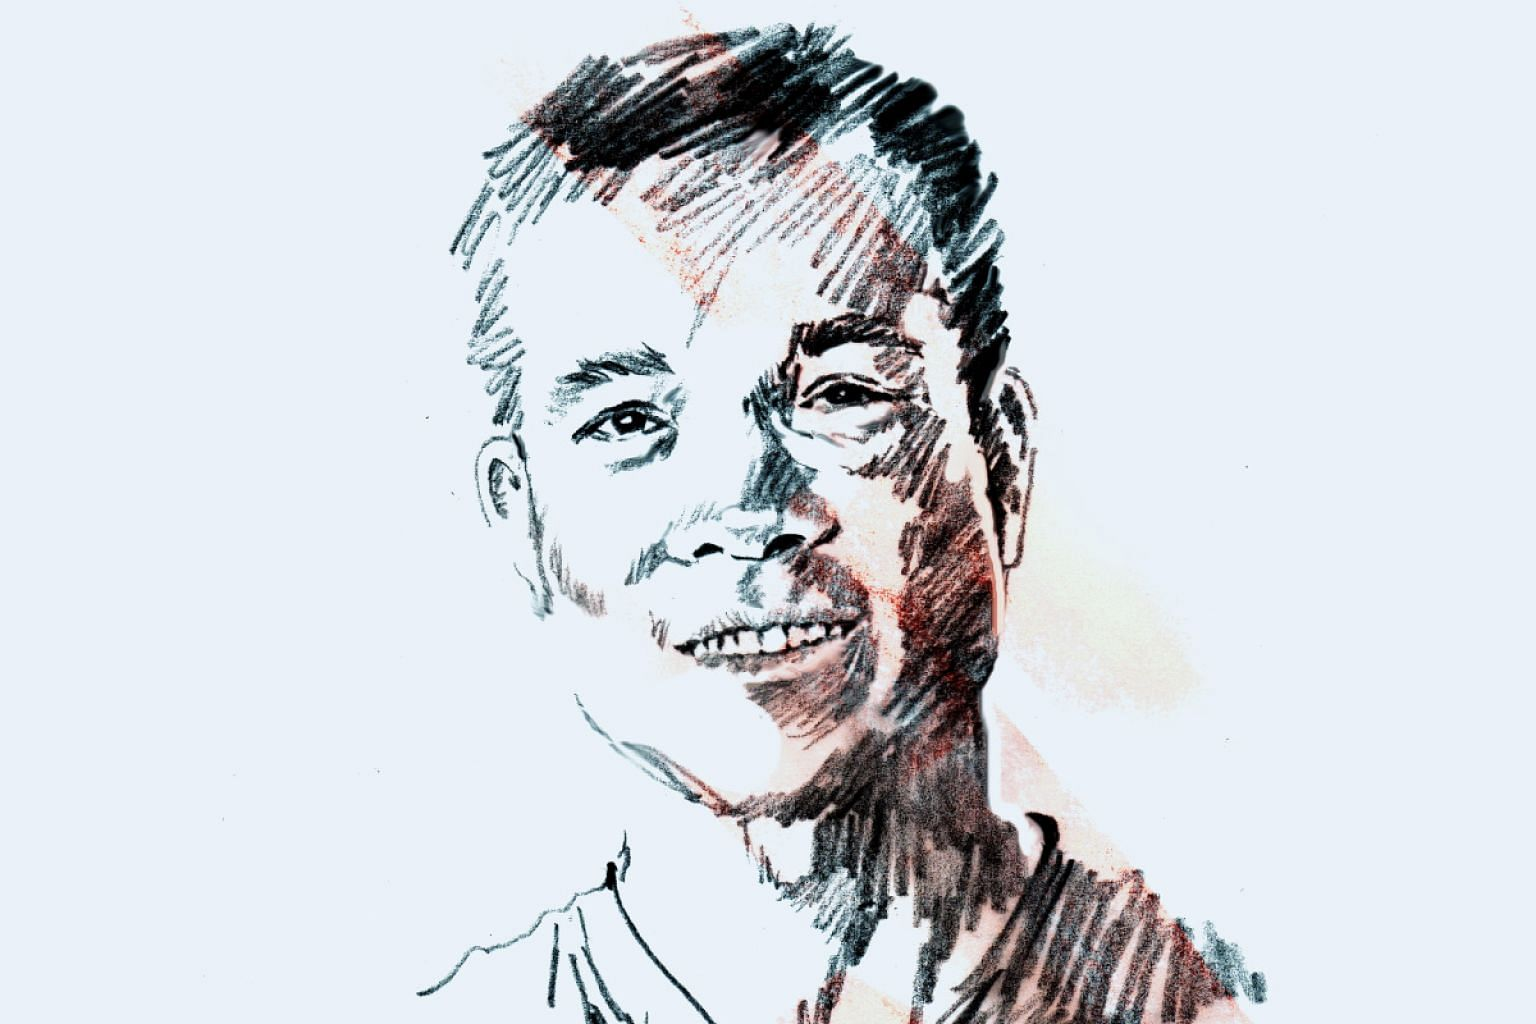 A portrait illustration of Vietnamese shooter Hoang Xuan Vinh.